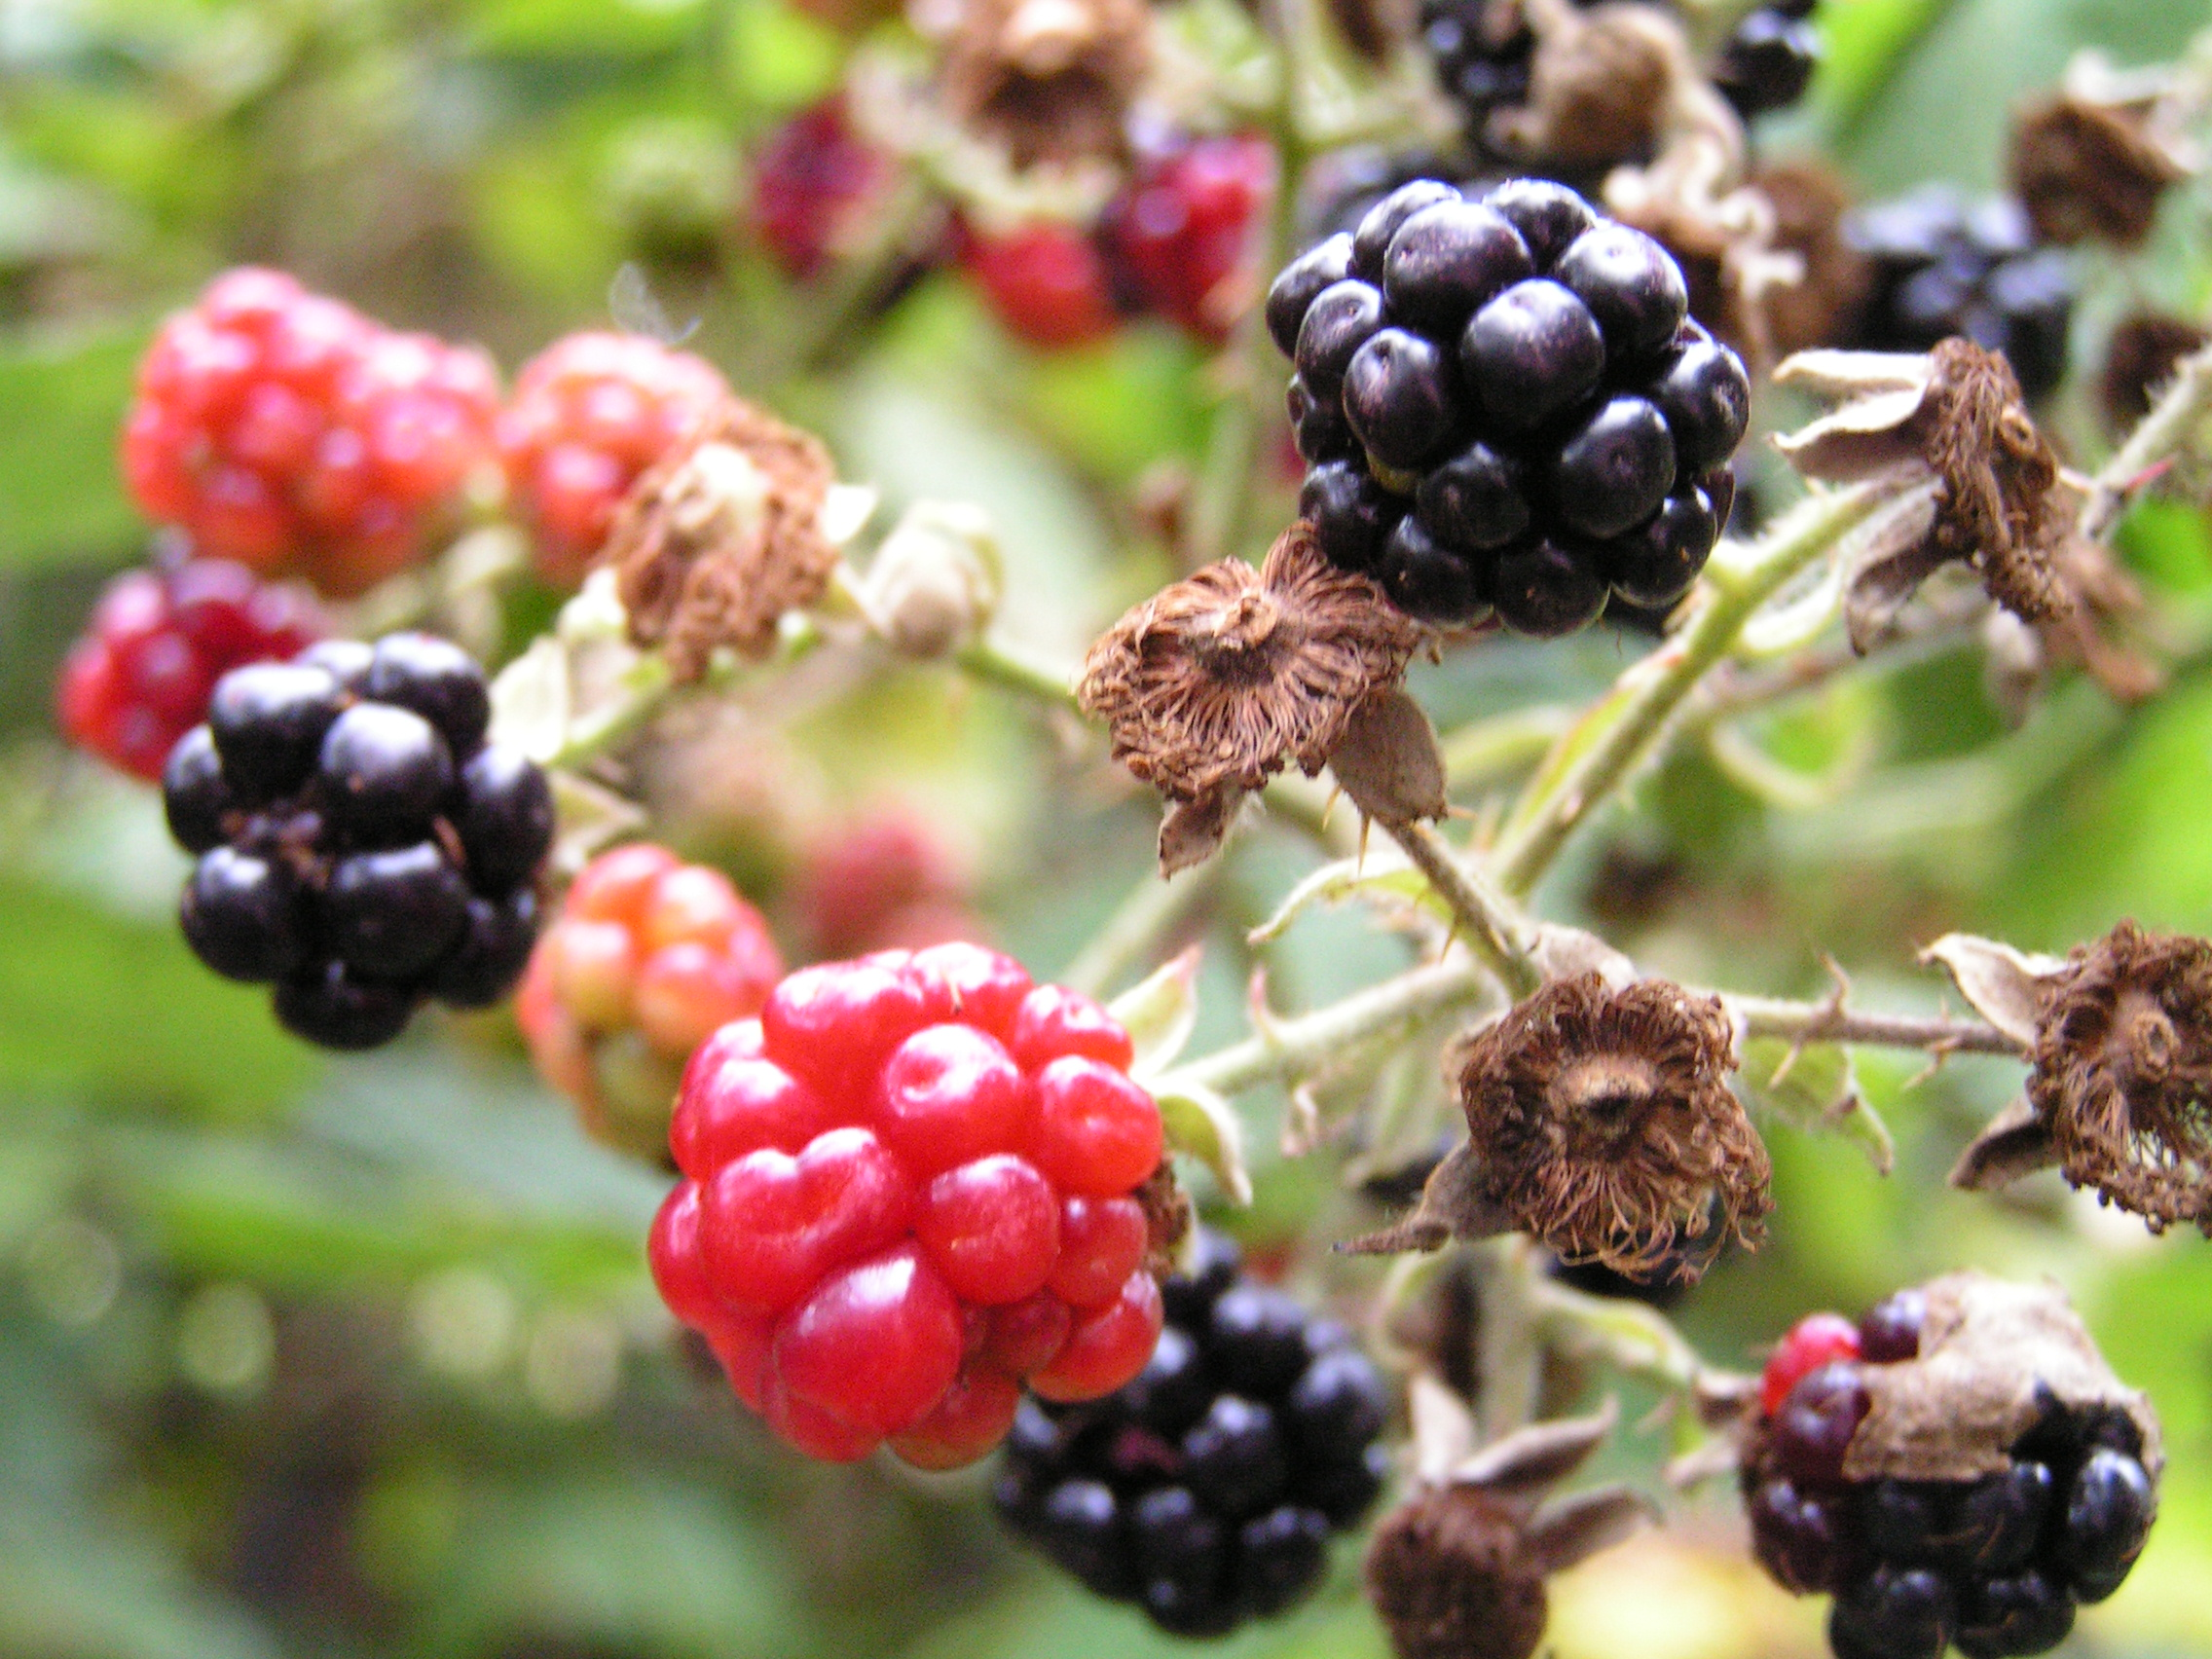 Blackberries.